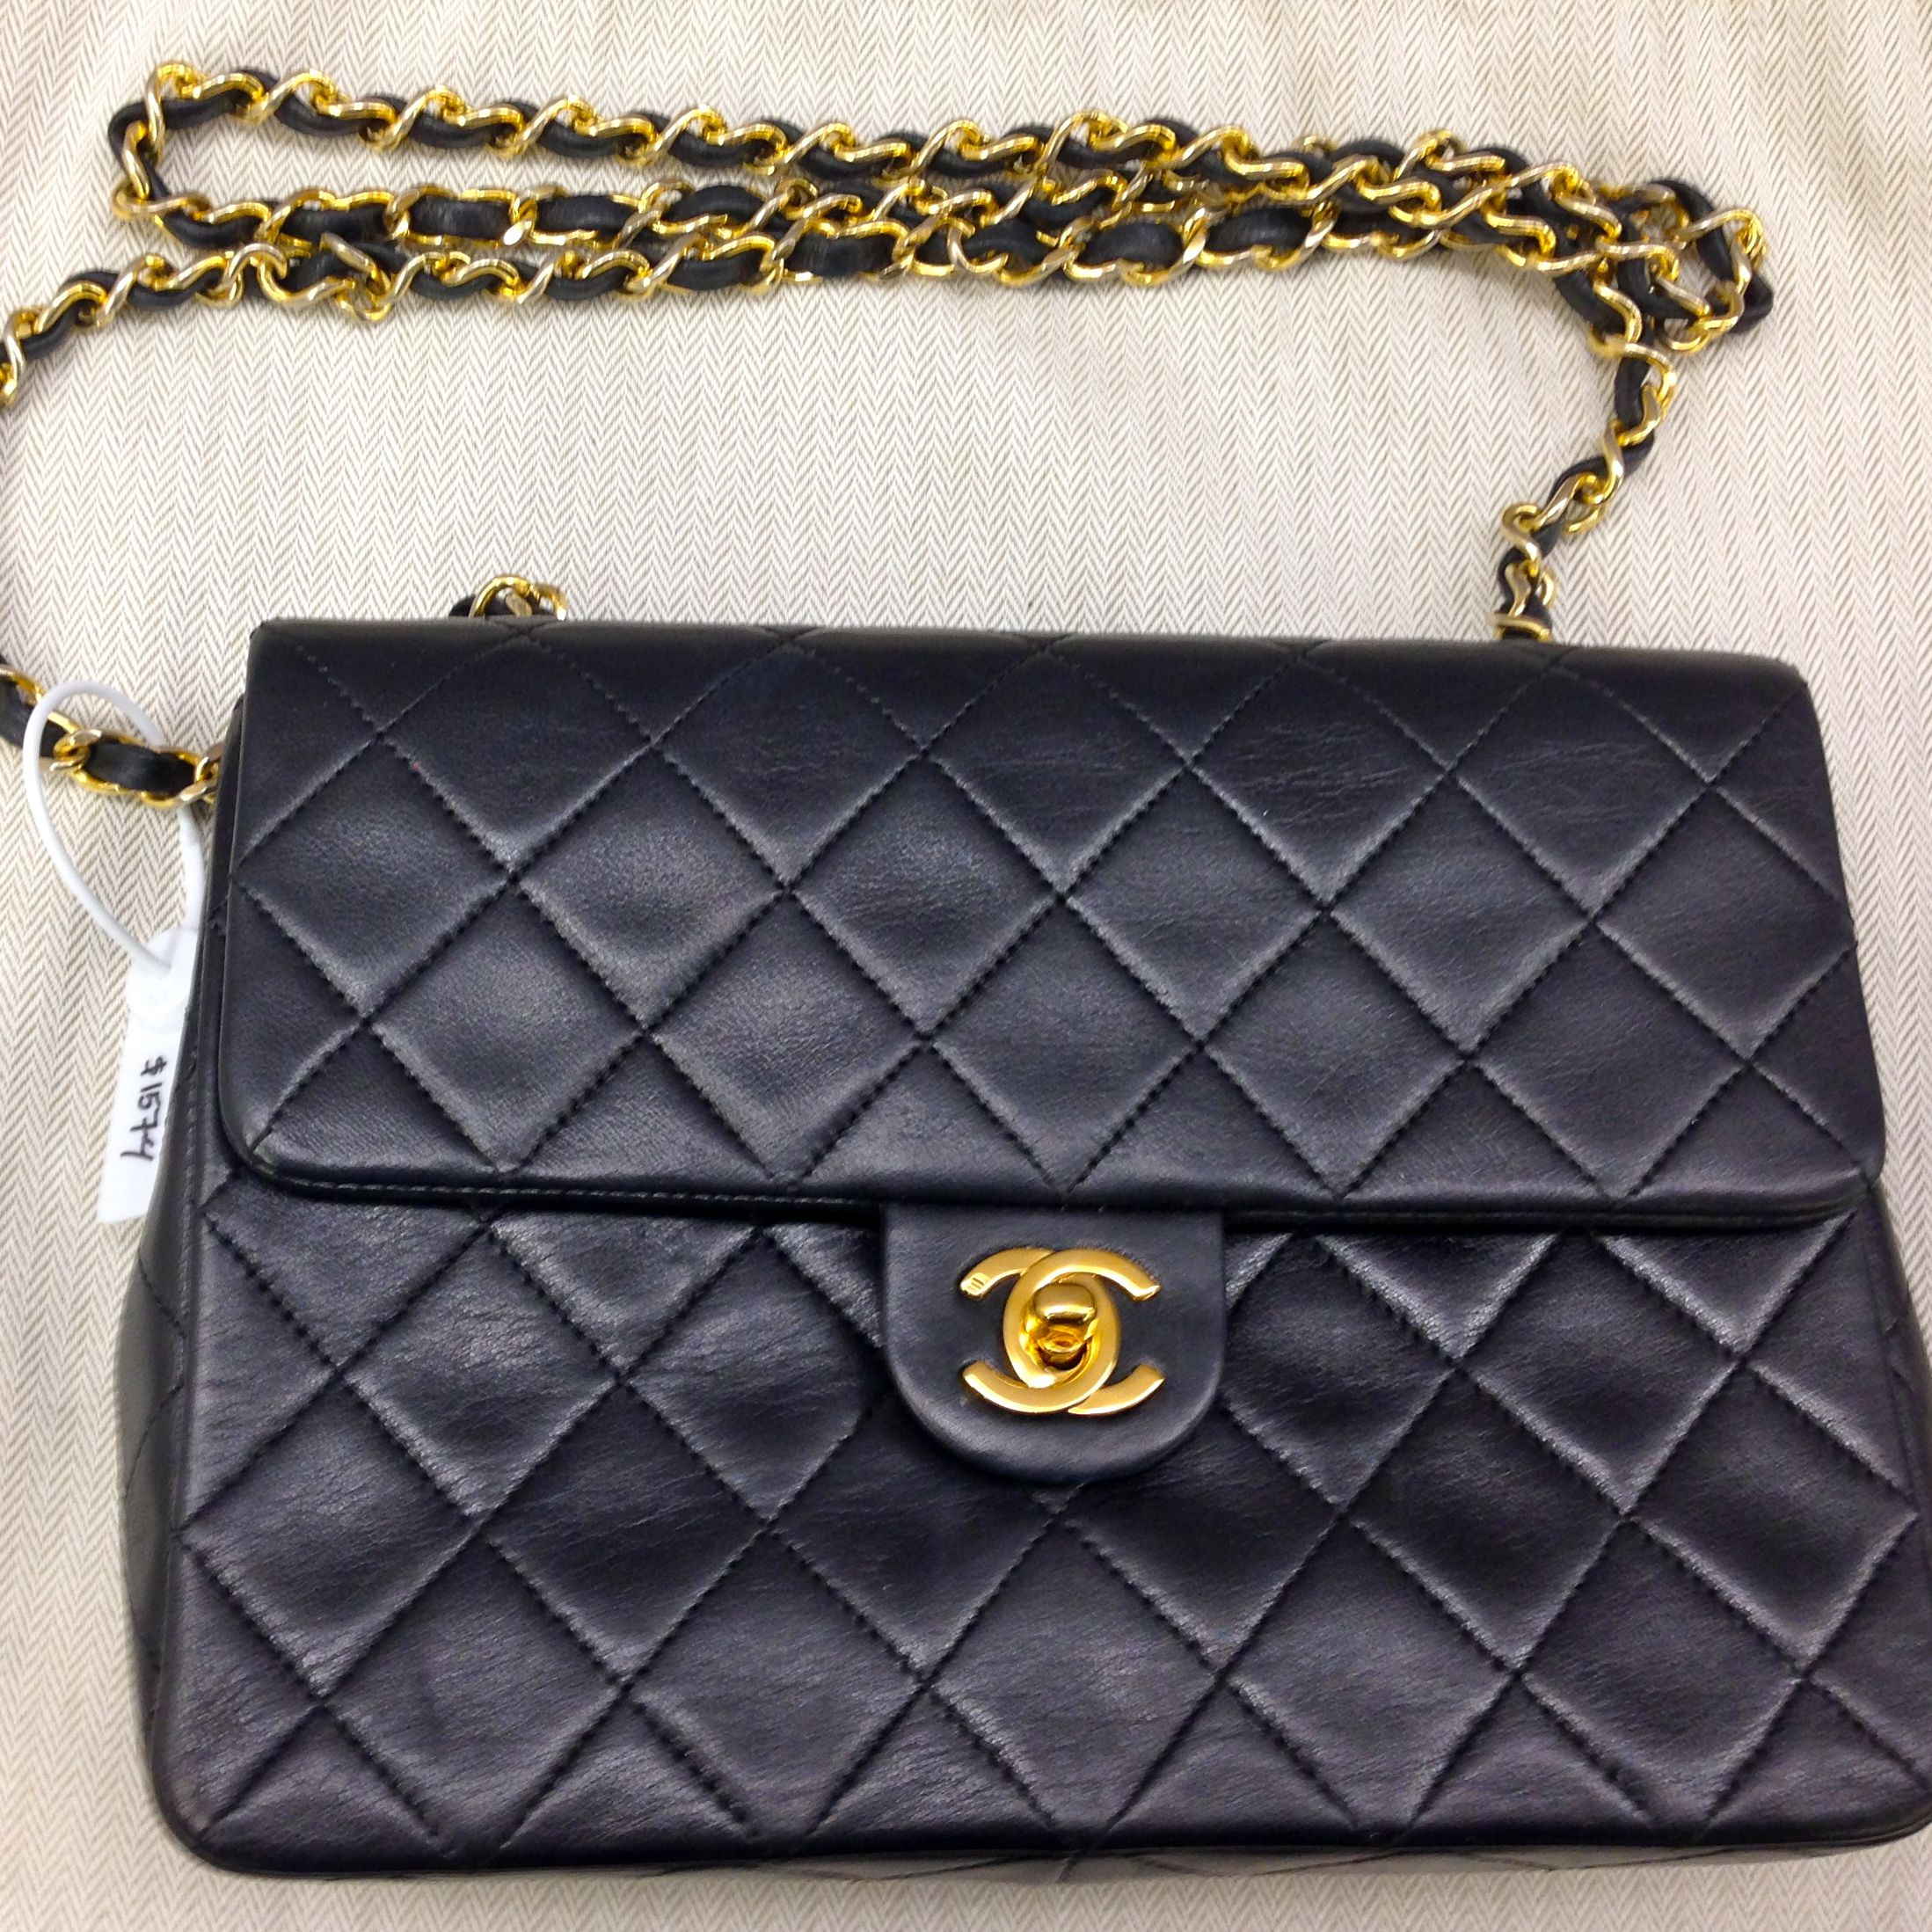 ff1b2722448a Chanel Handbags: How to Tell if It's Real or Fake